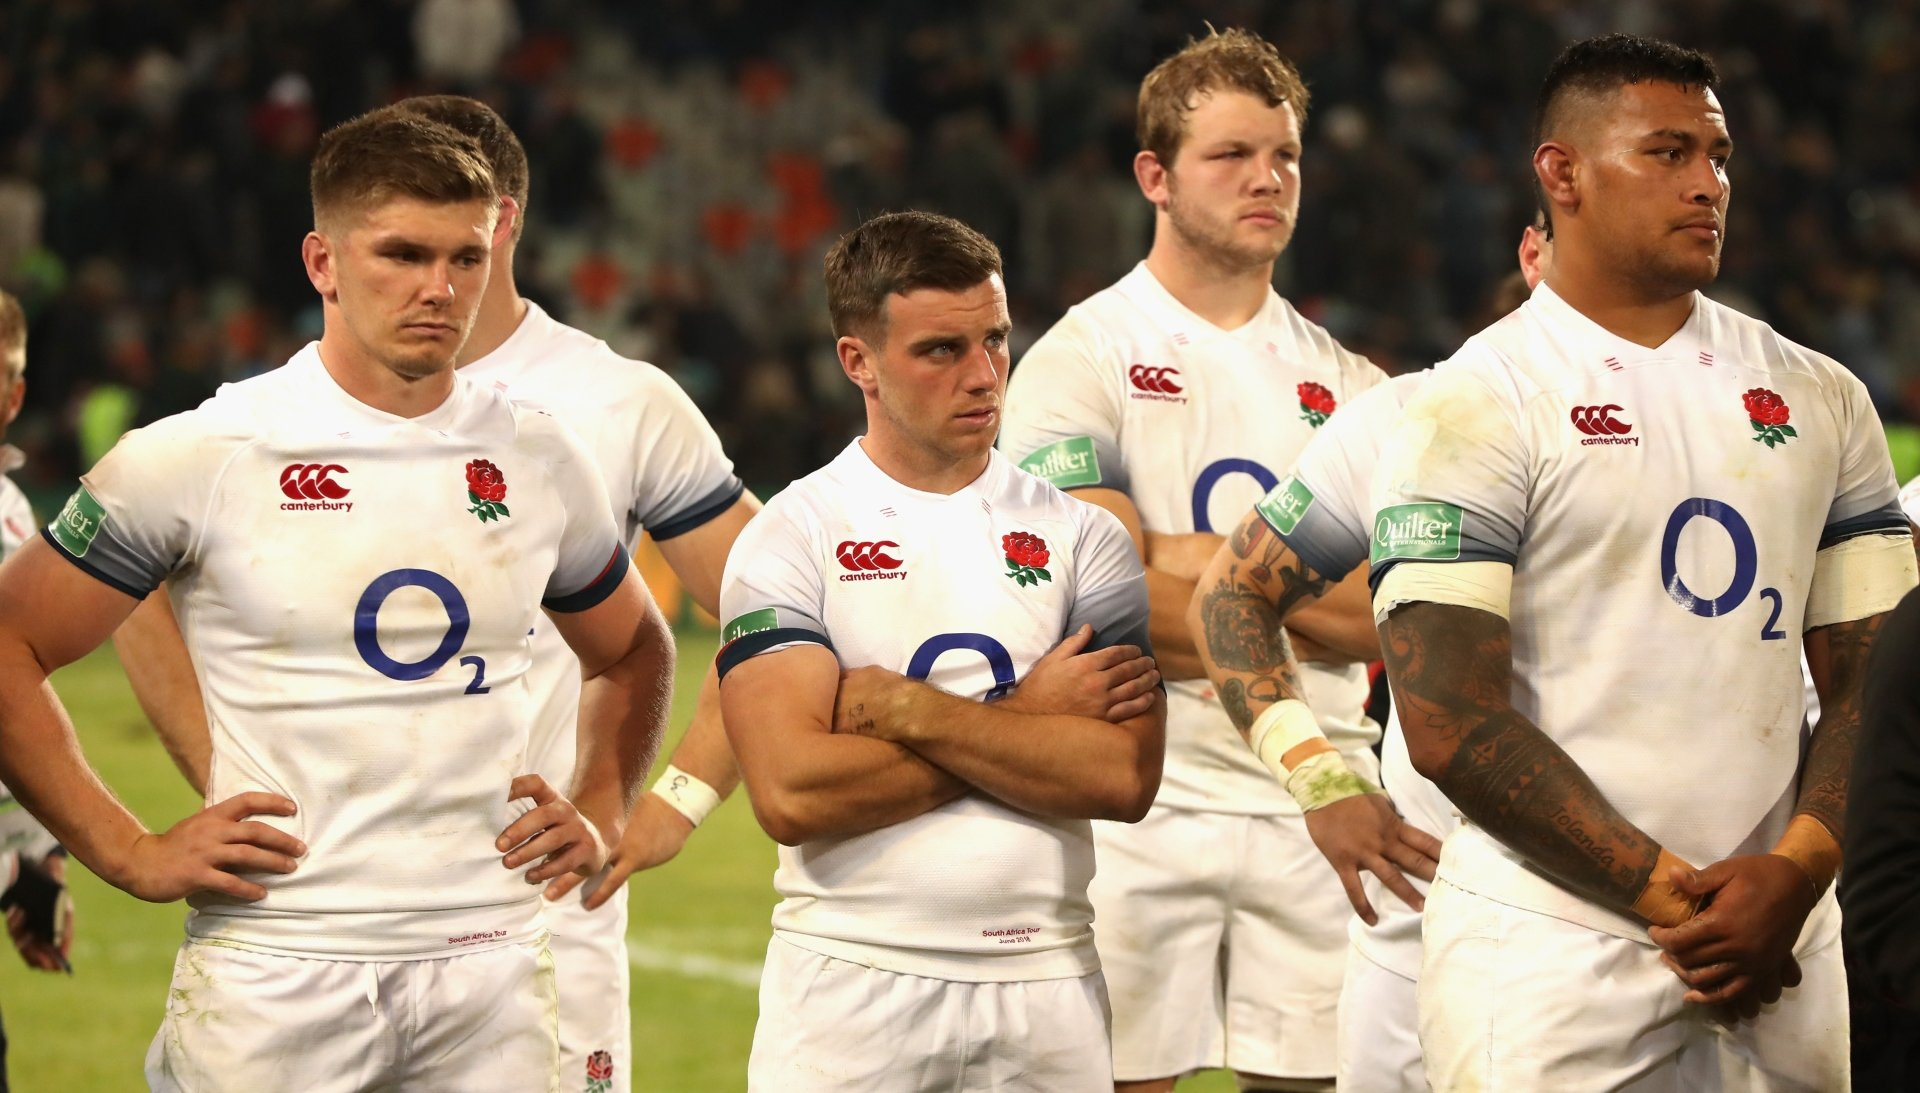 Angleterre-France-6-nations-sejour-seminaire